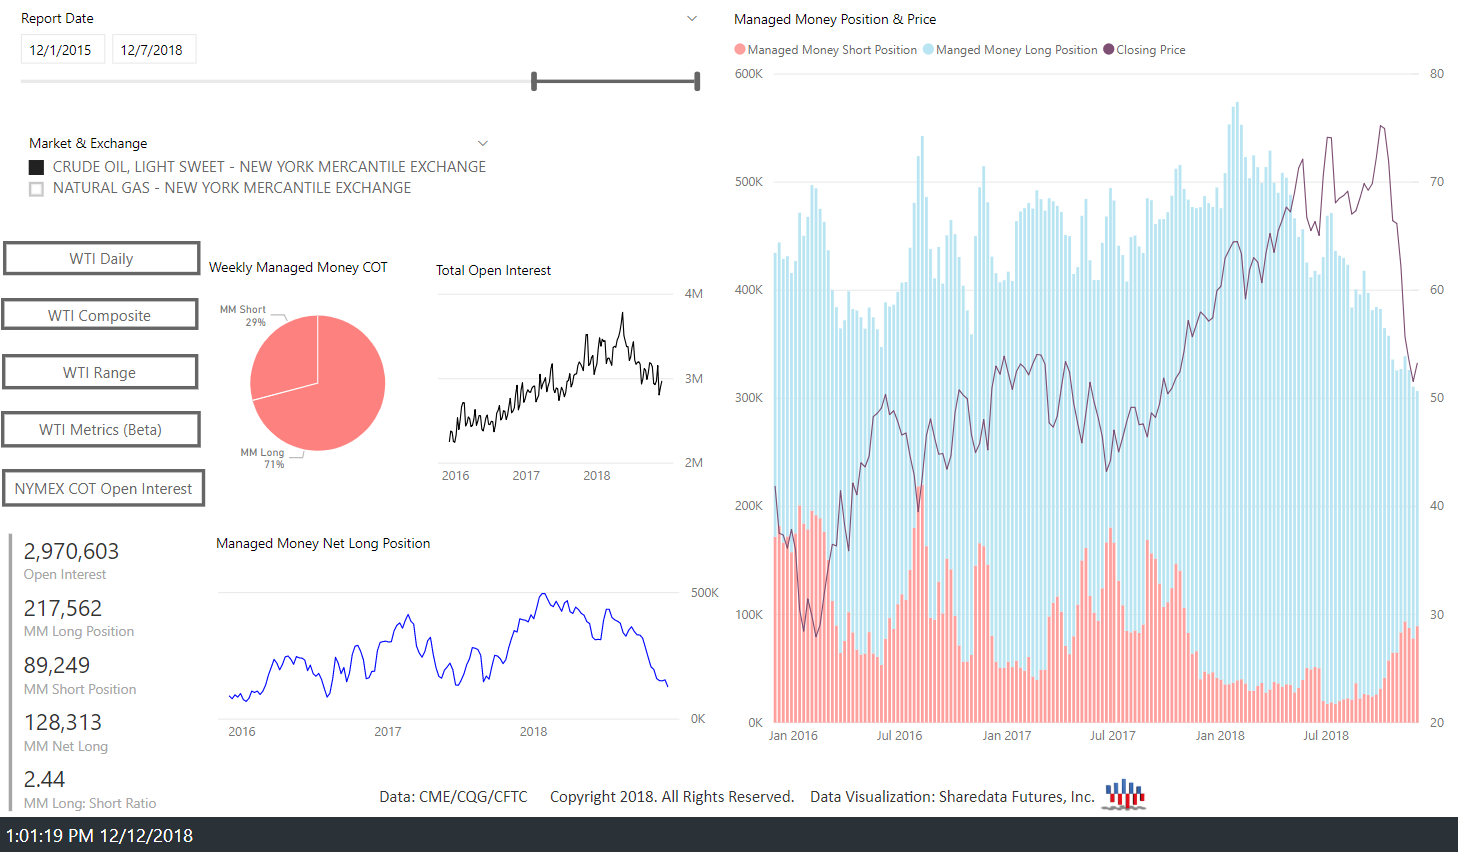 The NYMEX Weekly COT Dashboard